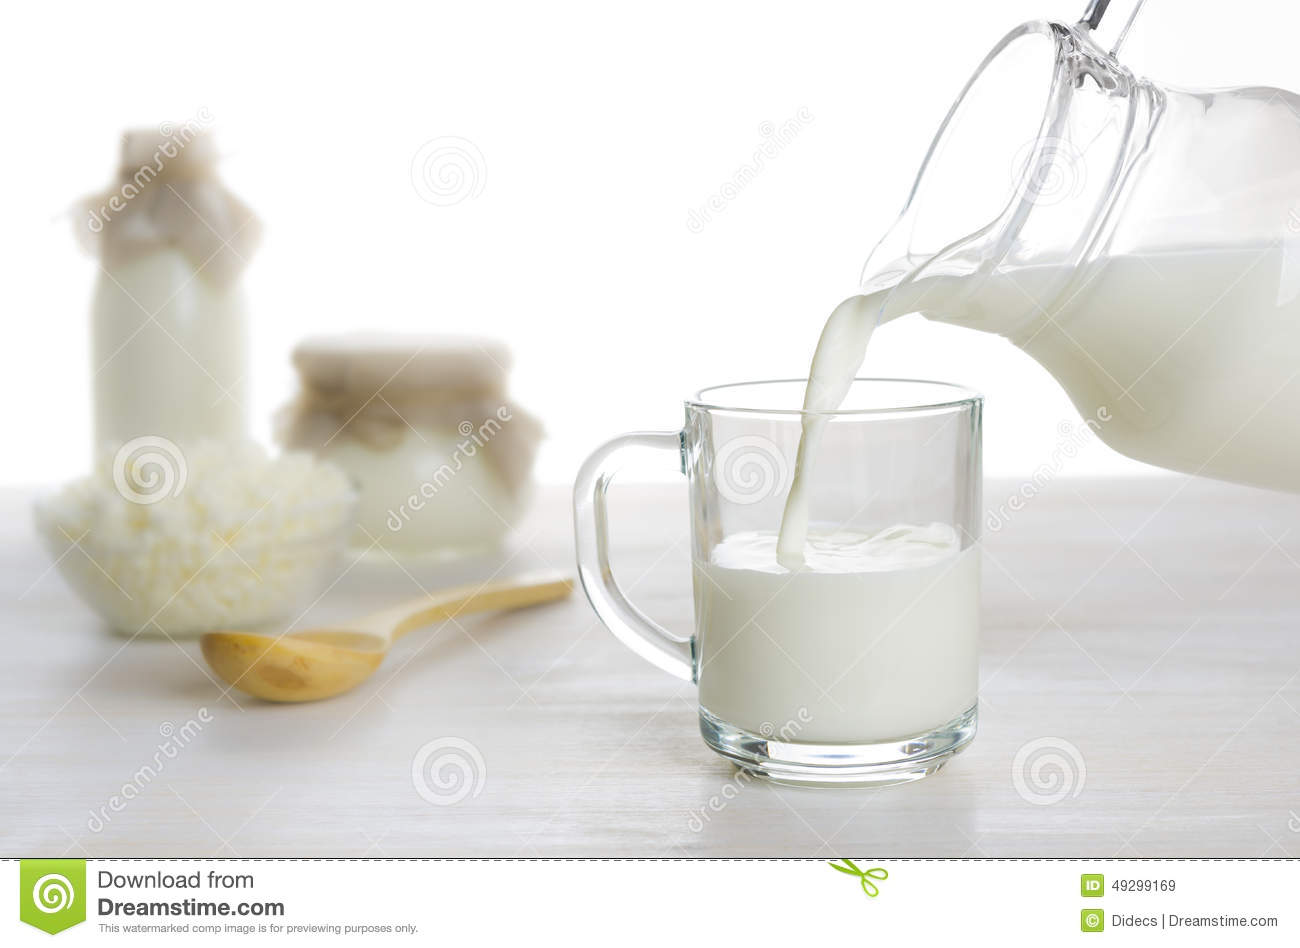 INDIAN DAIRY PRODUCTS